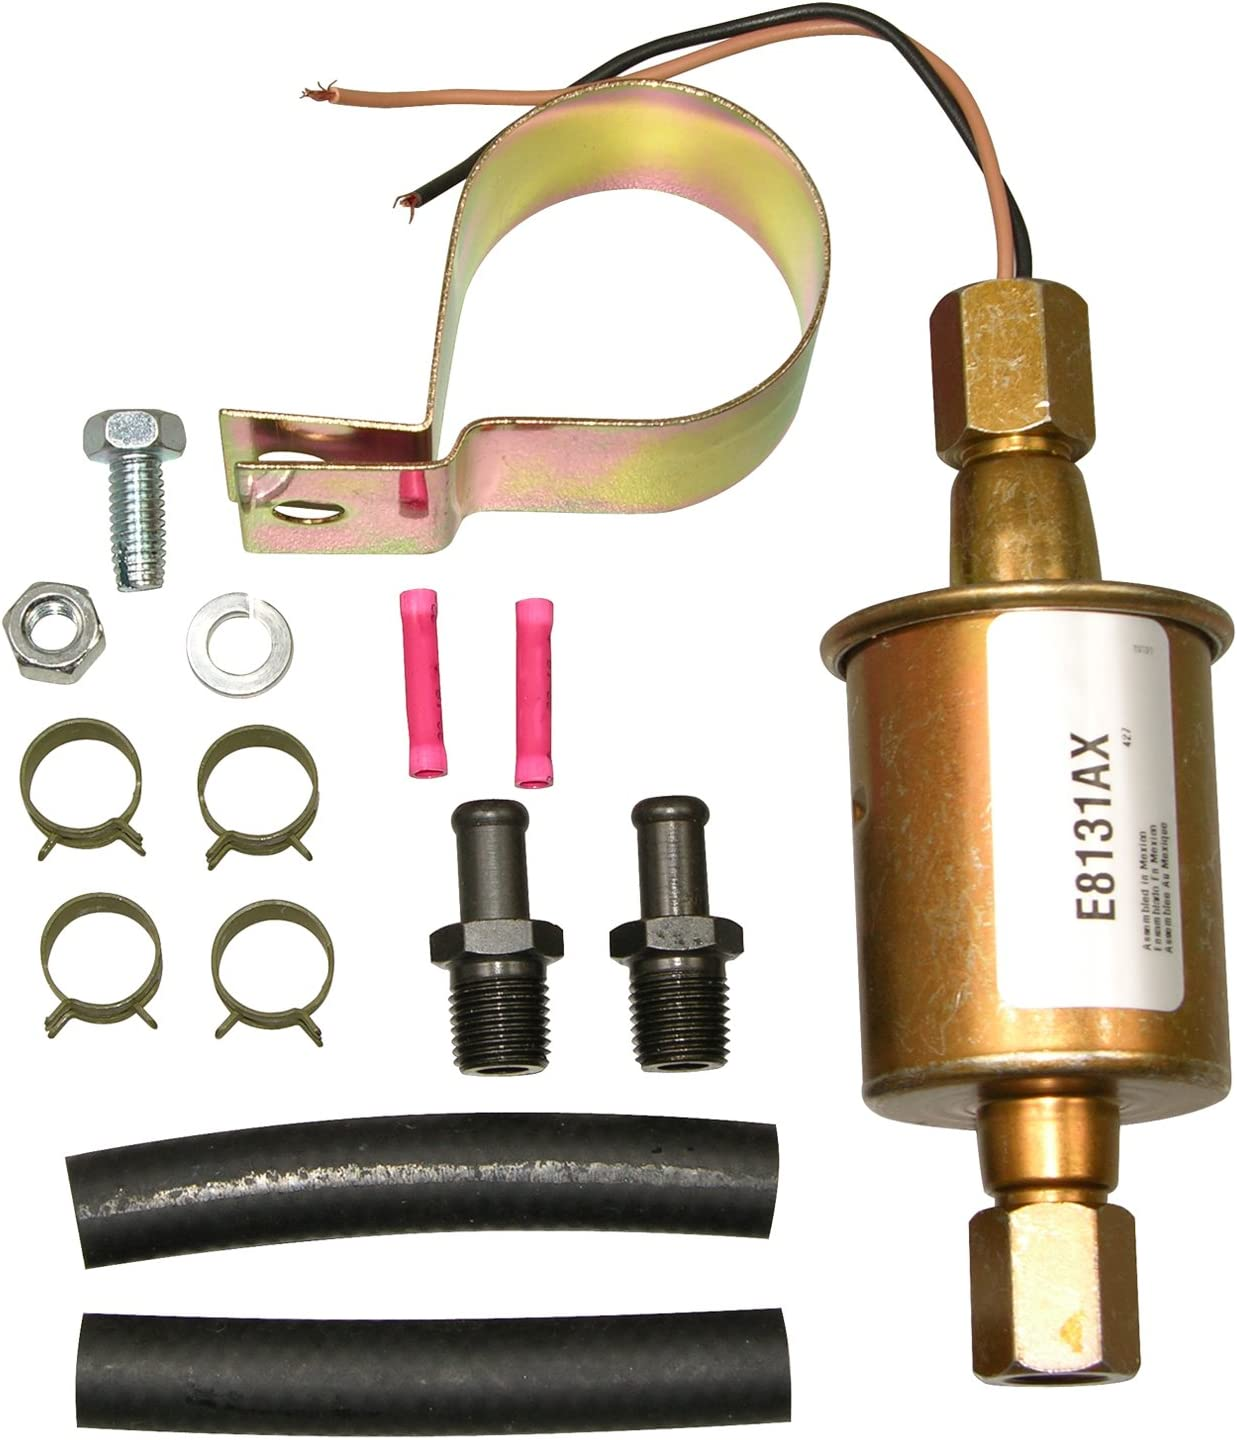 Amazon Com Airtex E8131 Universal Electric Fuel Pump Cadmium Gold Automotive